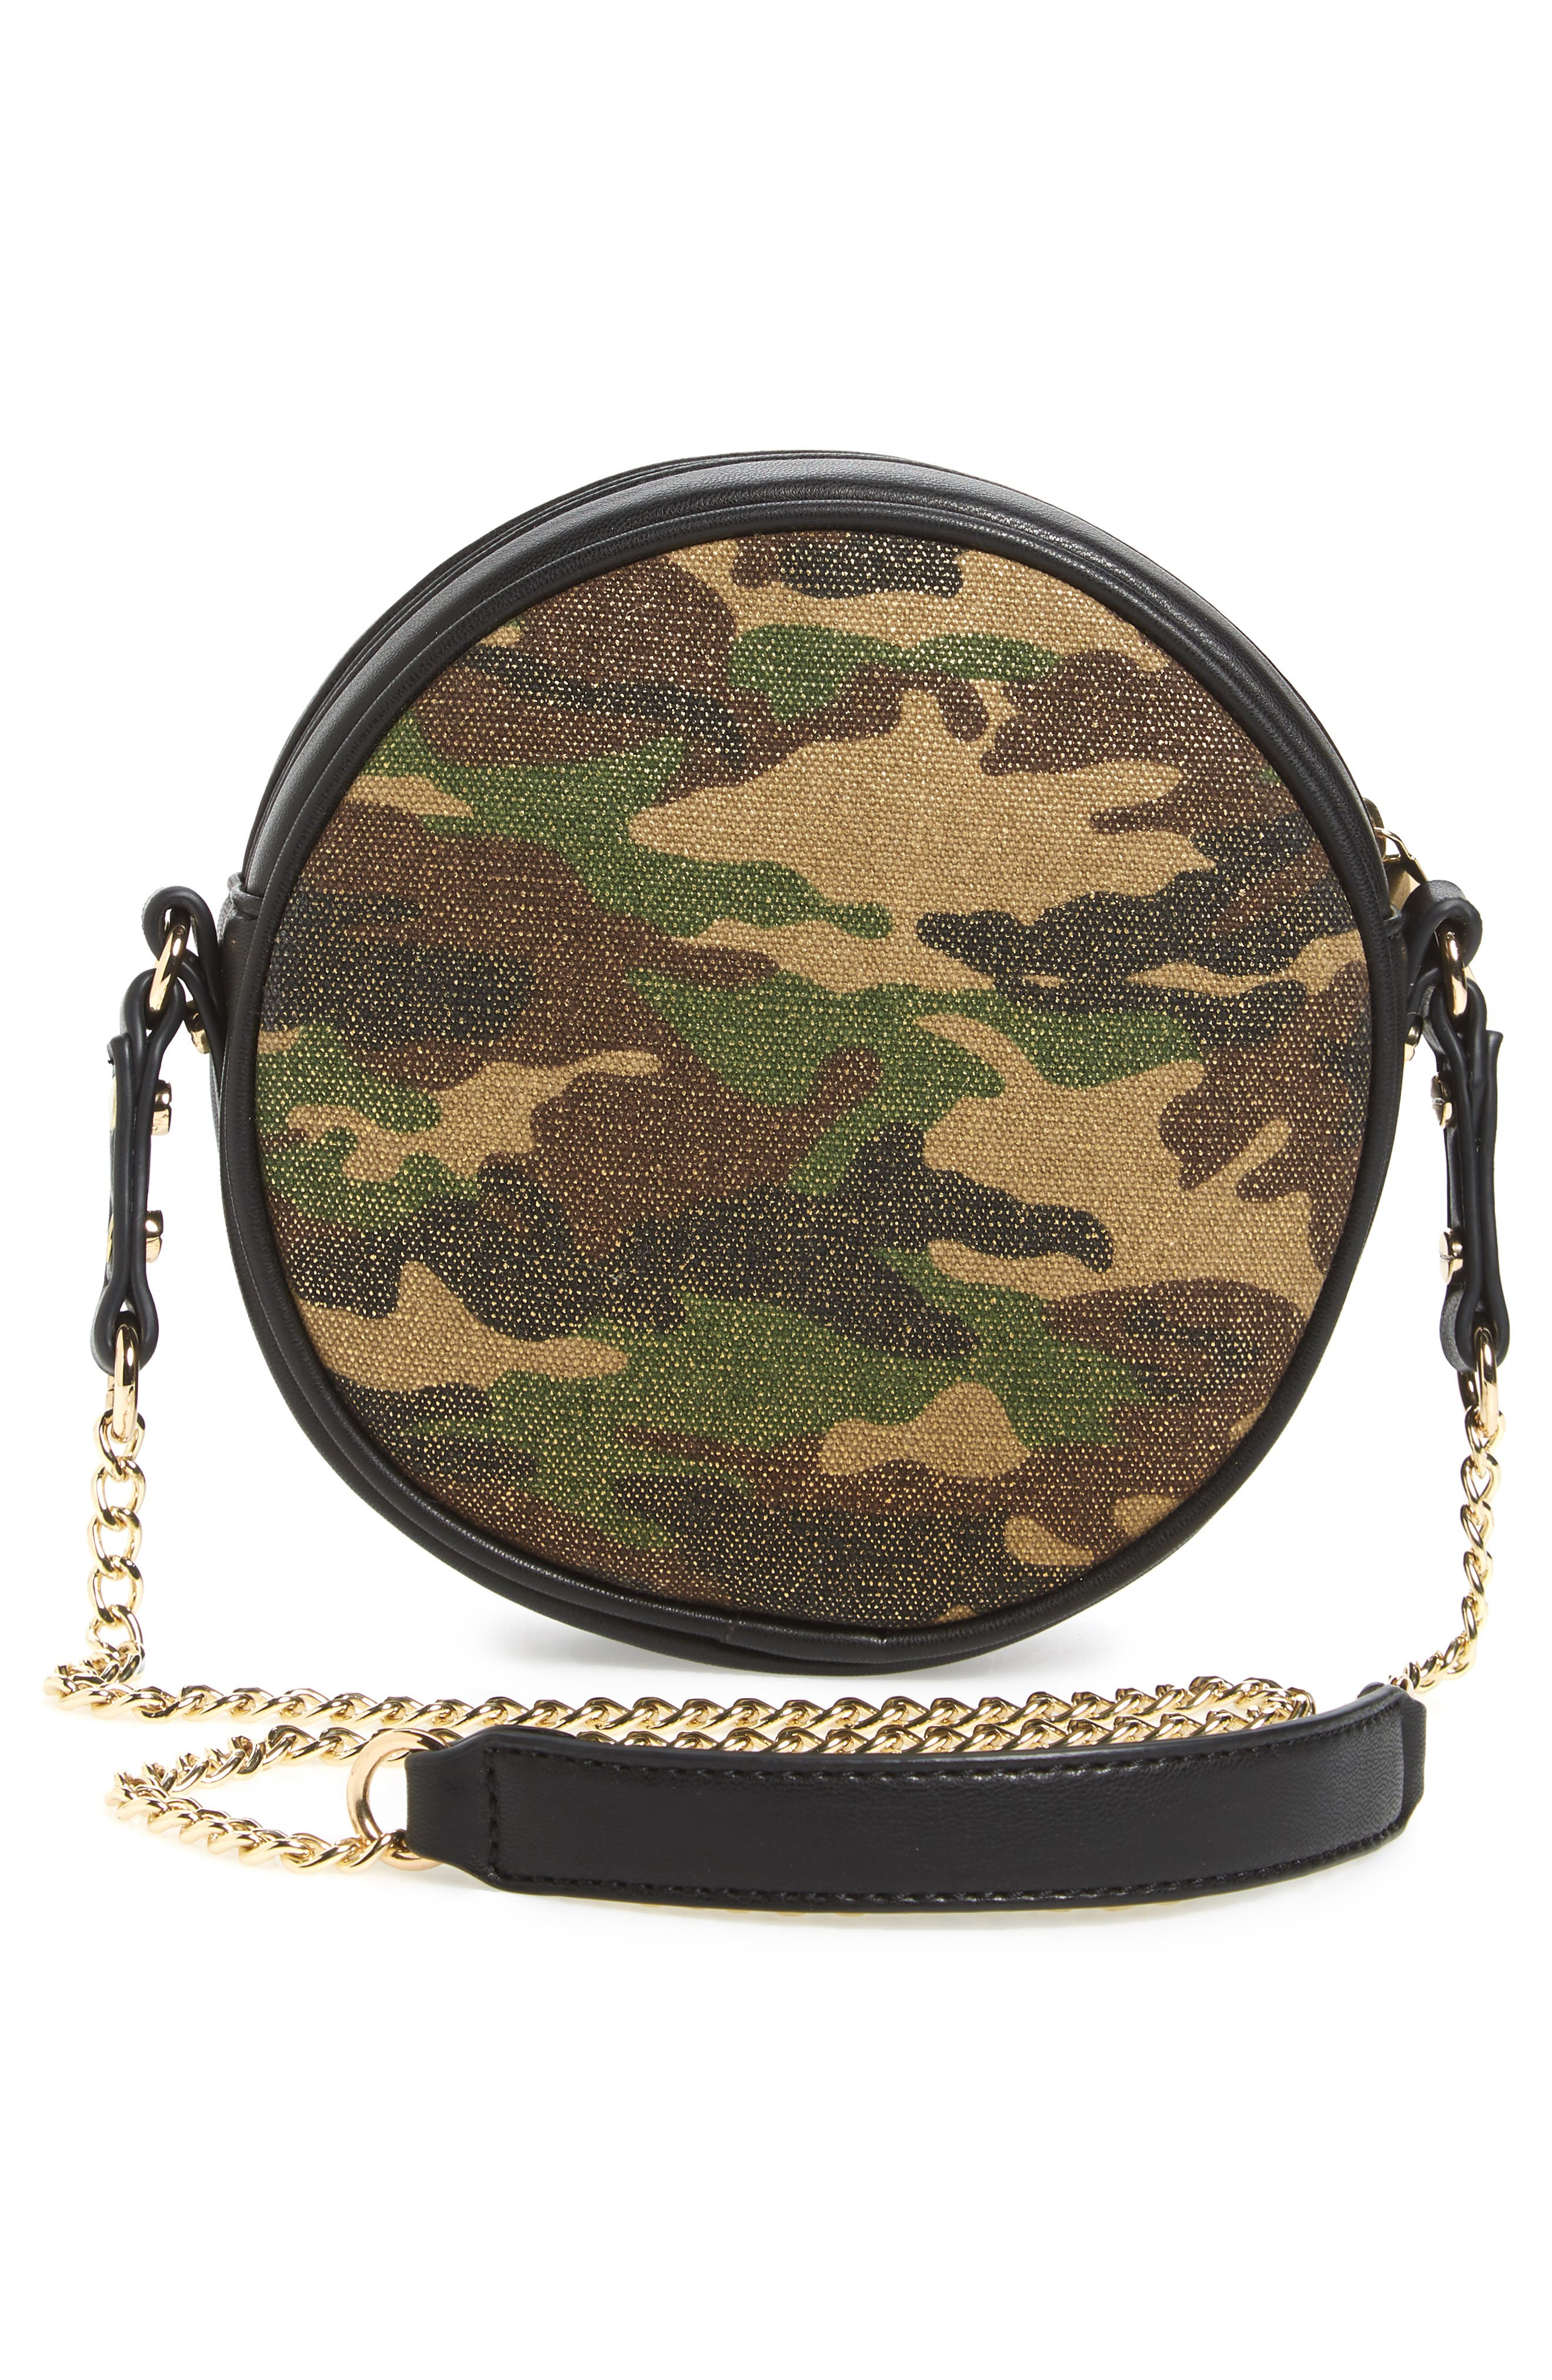 Mali + Lili Camouflage Vegan Leather Canteen Crossbody Bag,                             Alternate thumbnail 3, color,                             Camouflage